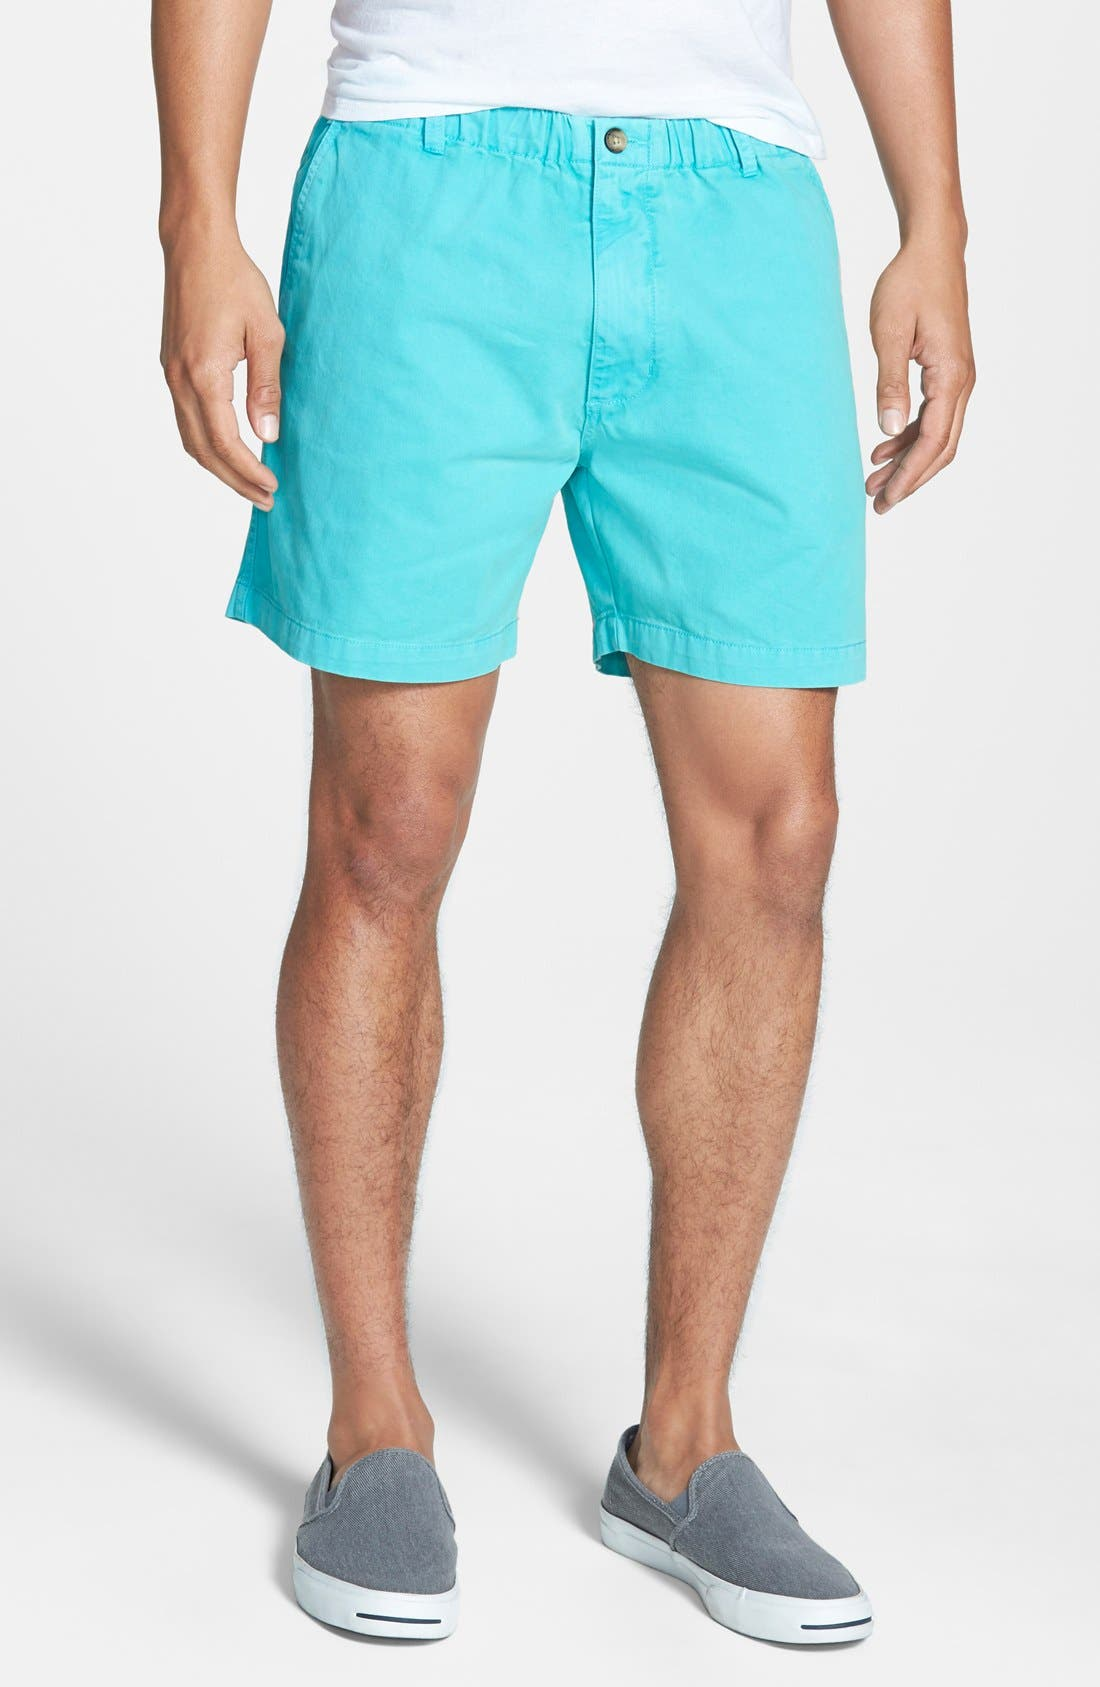 'Snappers' Vintage Wash Shorts,                             Main thumbnail 1, color,                             461